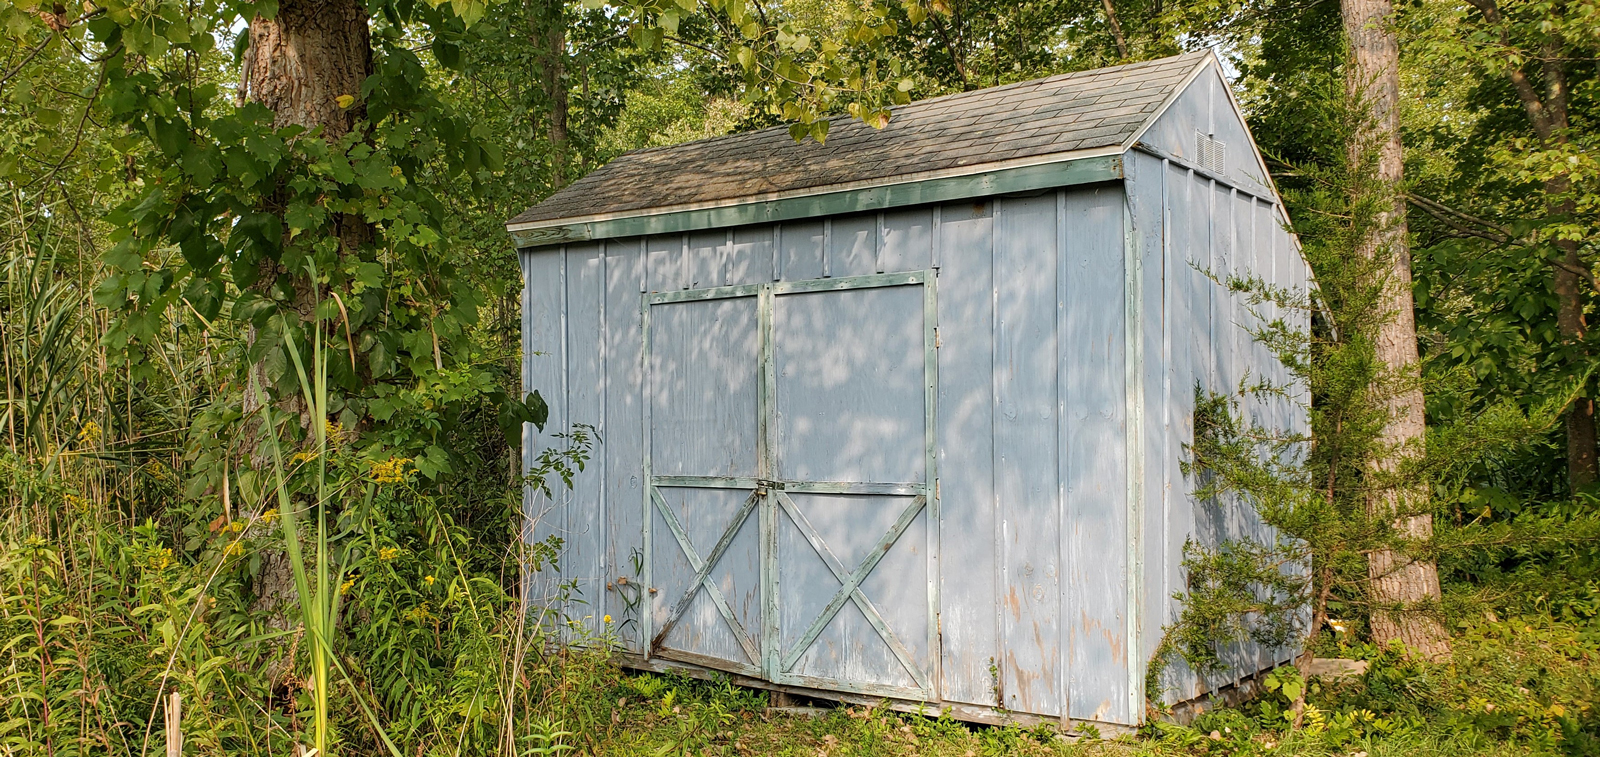 Shed-a